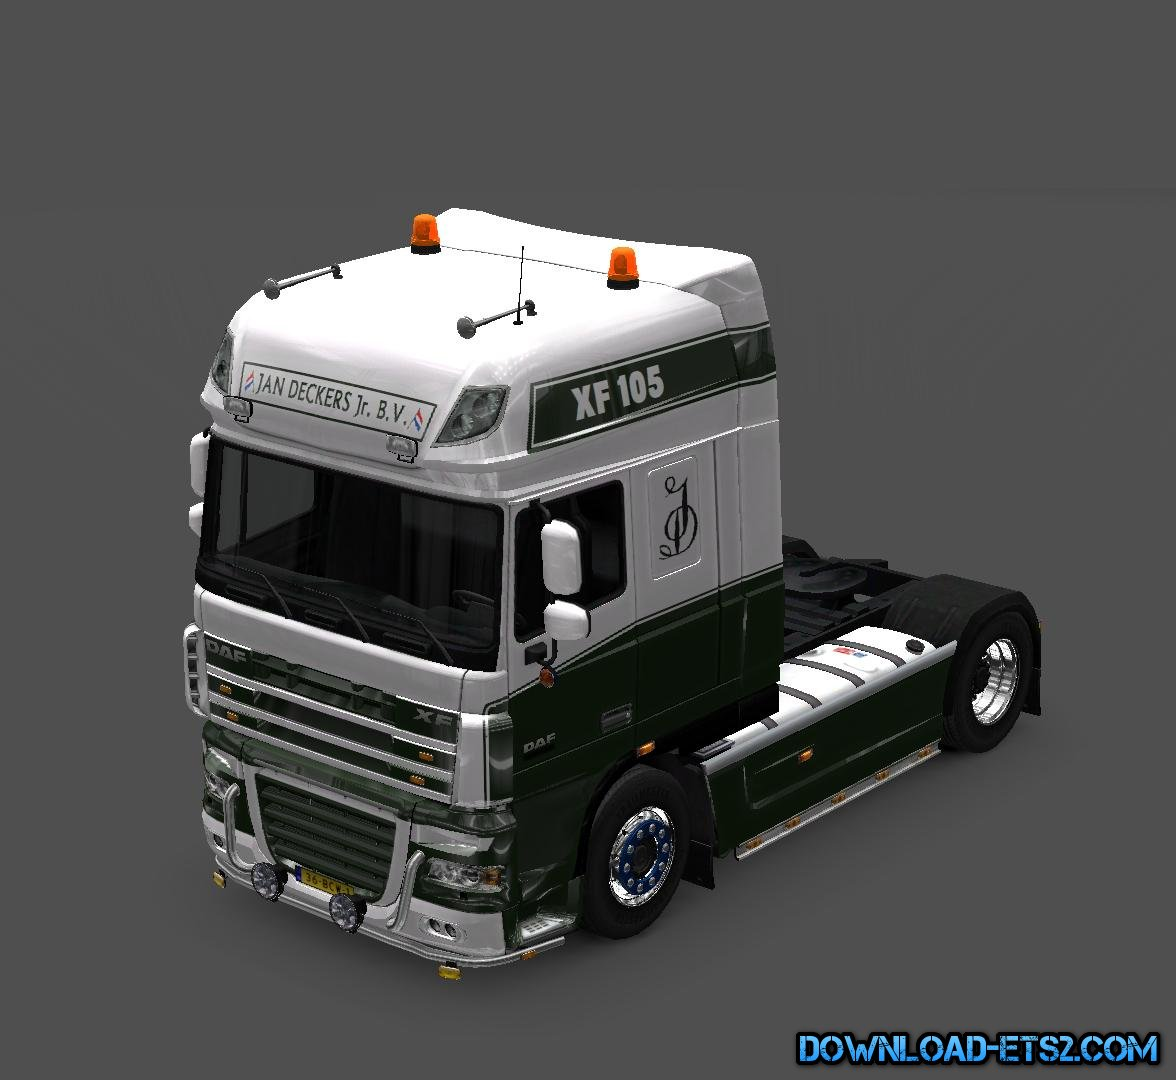 DAF XF 105 50K - JAN DECKERS JR. B.V.